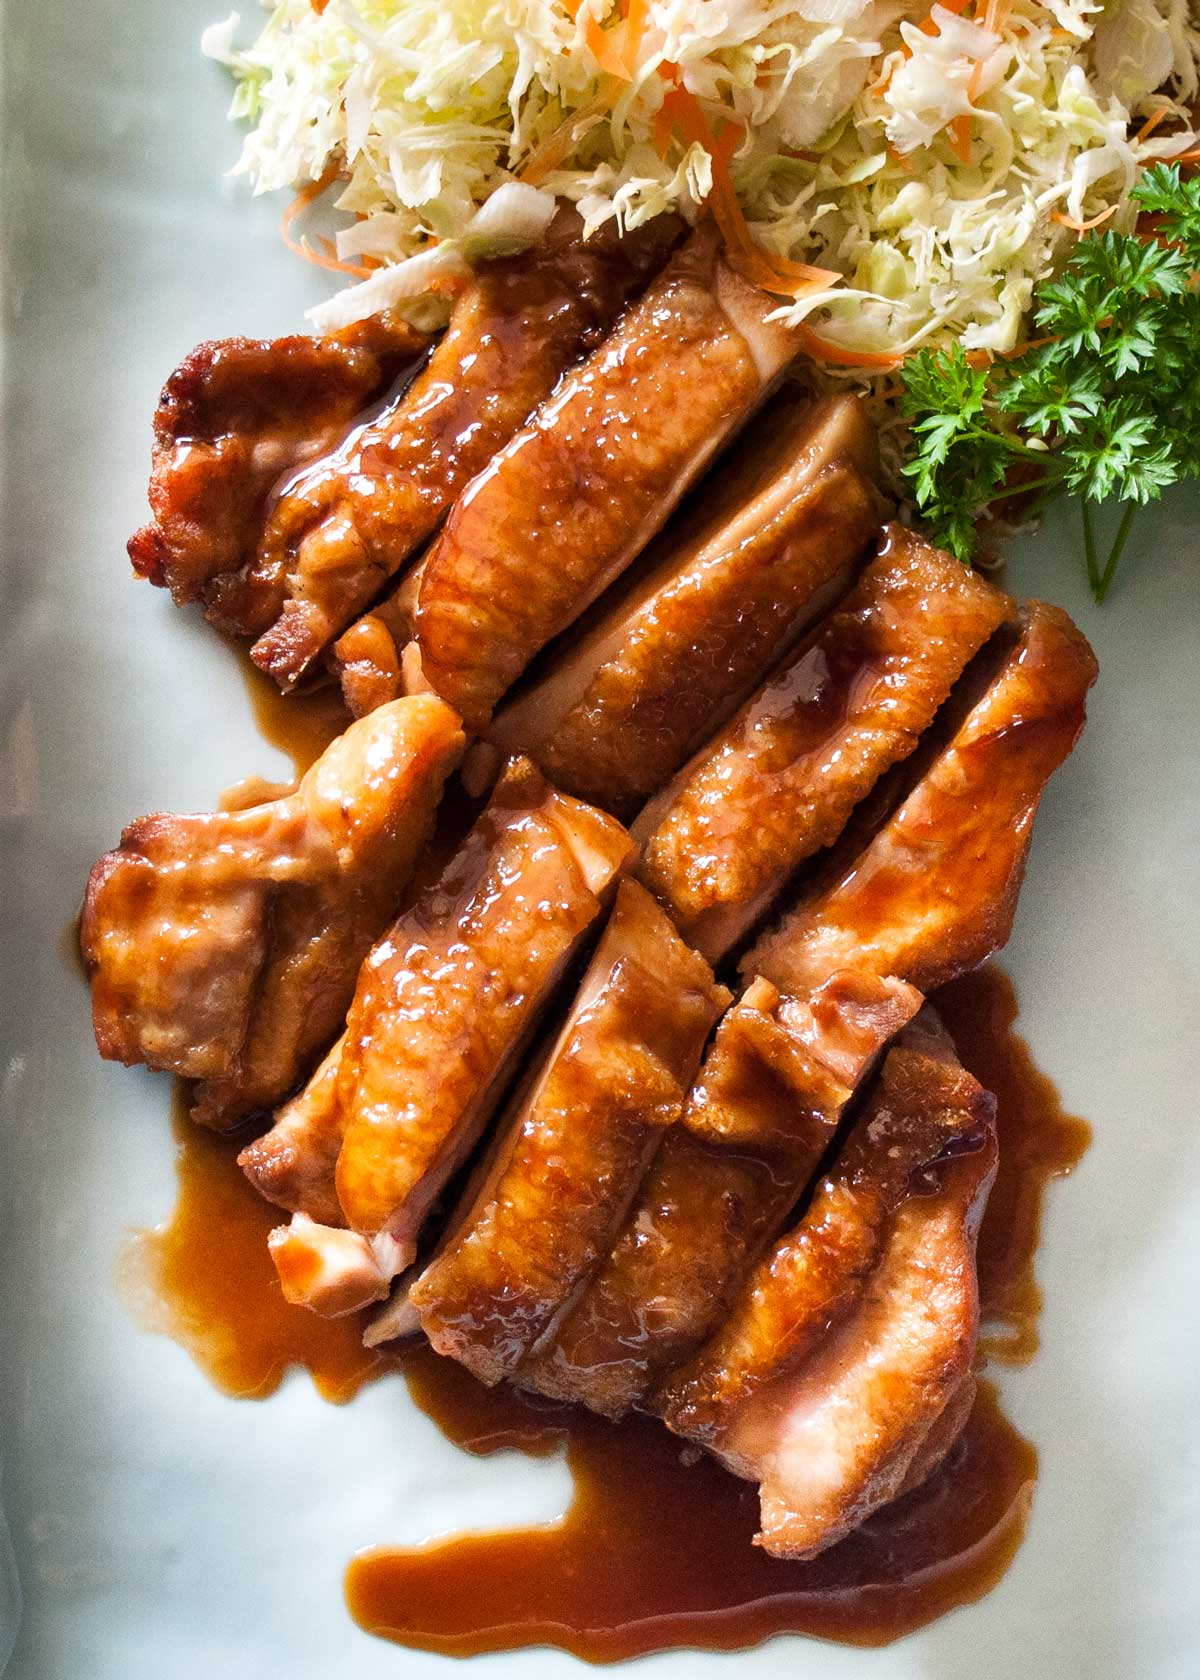 The very popular Japanese dish, Teriyaki Chicken is so easy to make. The sauce is just a mixture of soy sauce, sake, mirin and sugar. You don't even marinate the chicken. Sauté the chicken, add the sauce and it's all done!